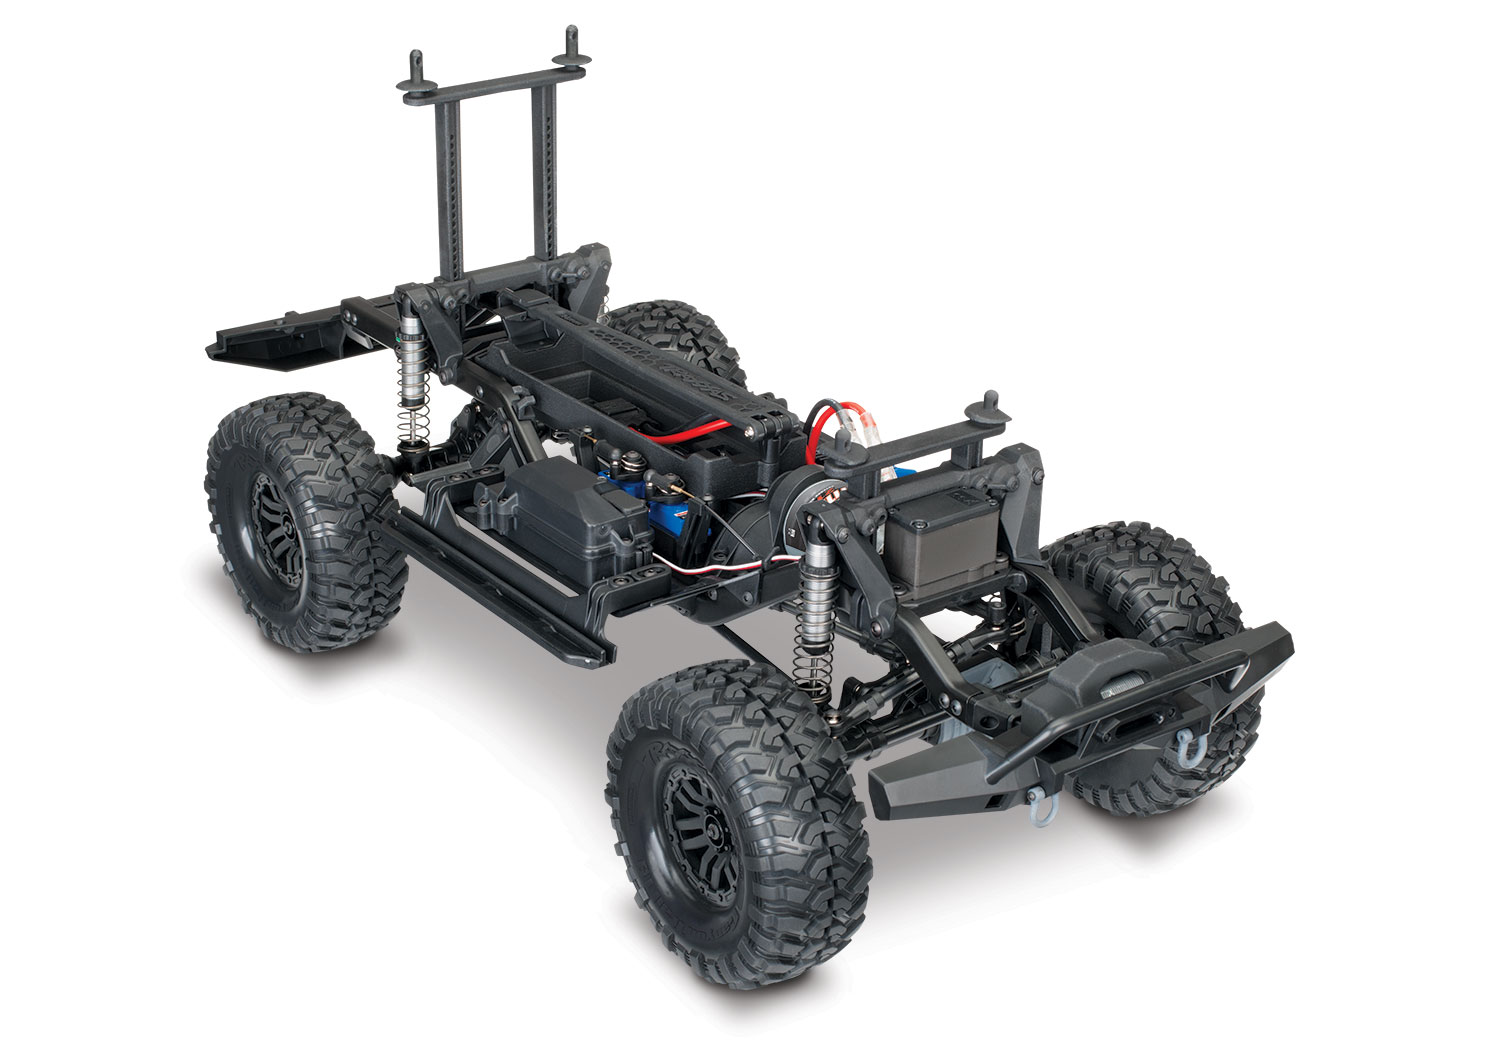 rc caraction with Behold Every Photo Traxxas Trx 4 on Classic Plastic Tamiya Grasshopper Ii Premium Exclusive besides Traxxas Revo 3 3 658 48 as well Quick Build Tamiya Tt 02b Ms together with Know Your Glue in addition Rc4wd Trail Finder 2 Toyota Hilux By Brian Pratt Readers Ride.